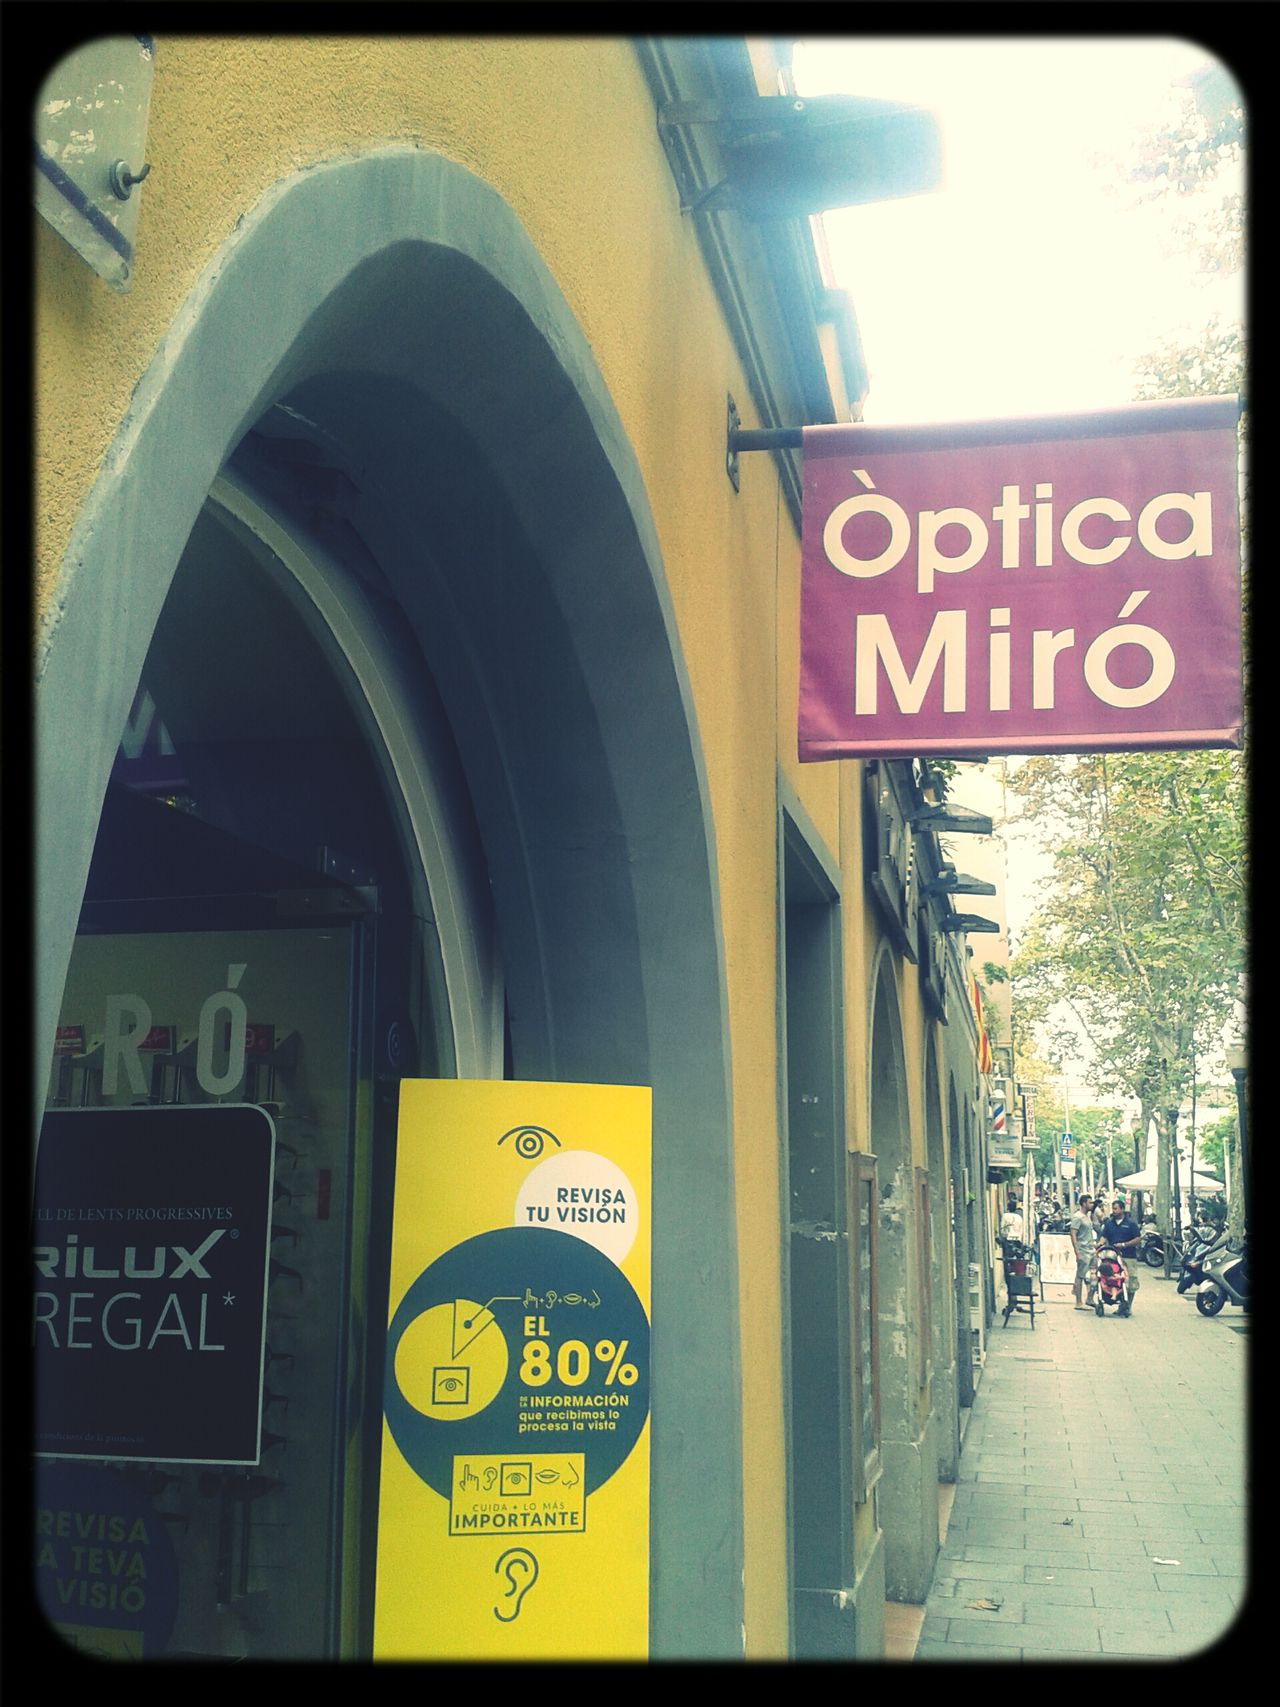 Enjoying Life les opticiens miro la blague. Barcelone